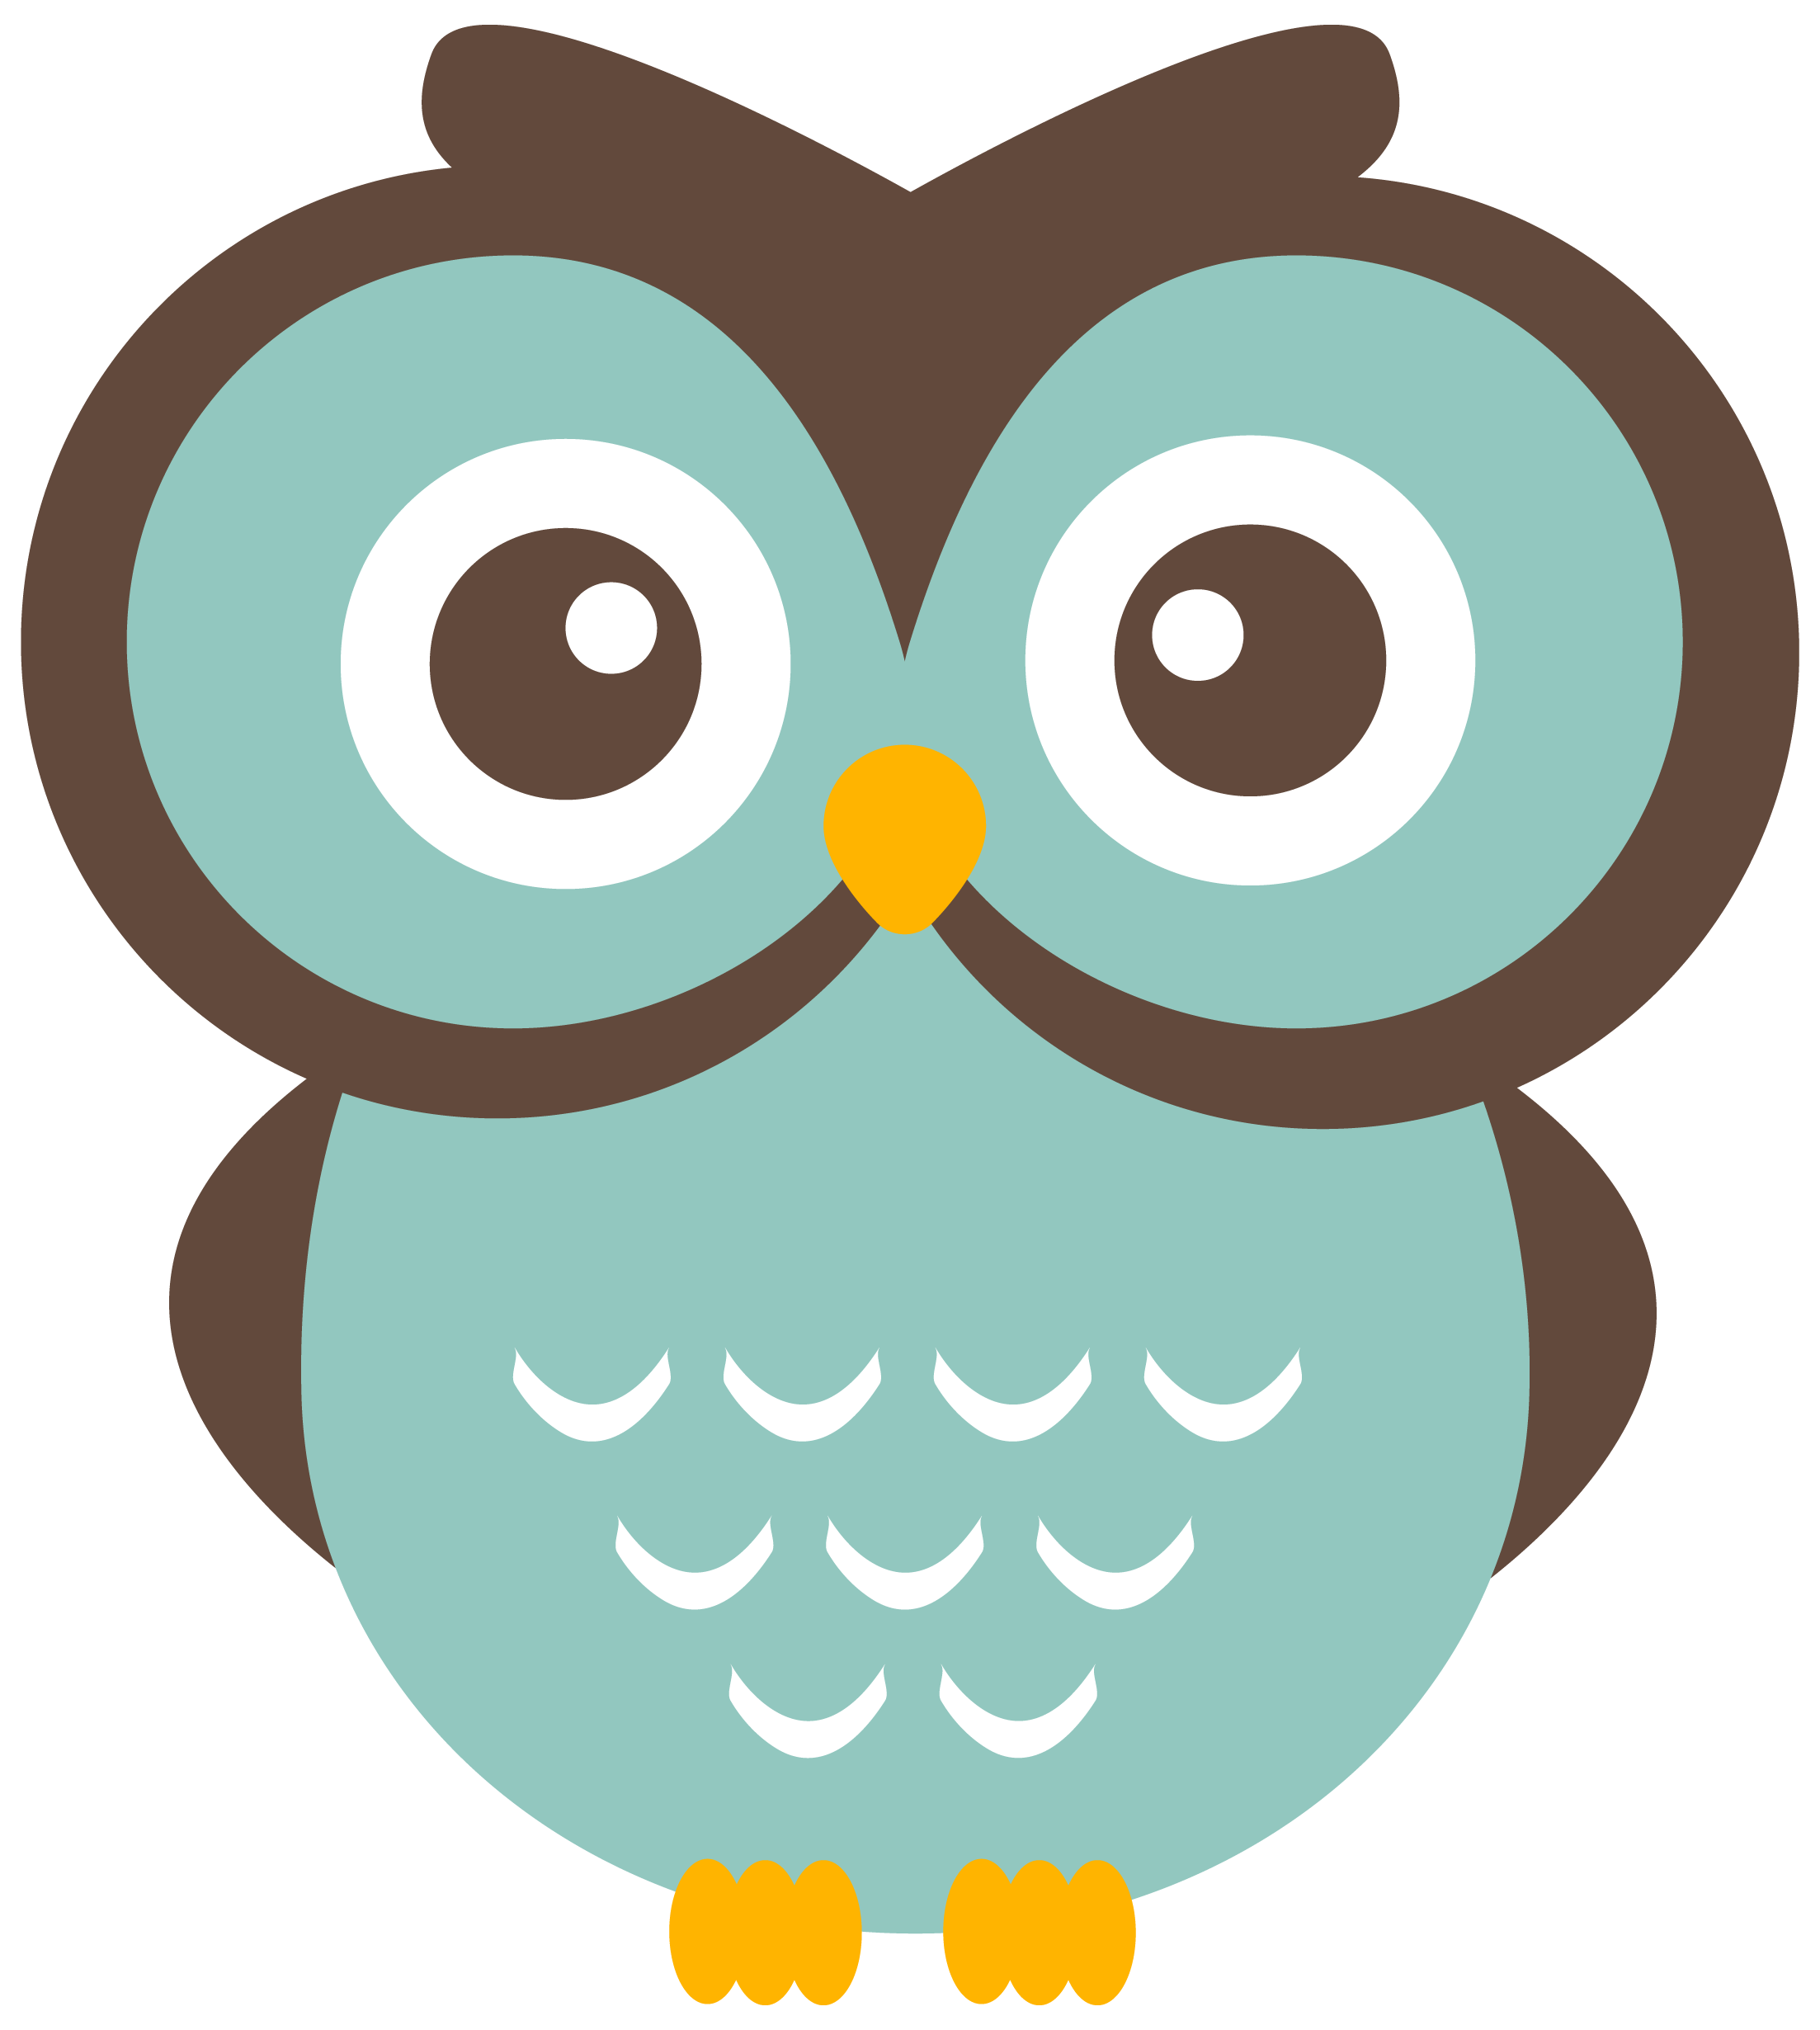 Owls clipart school black and white Teal Owl Clipart (free download to use) | Graphics: Flat, Halftone ... black and white